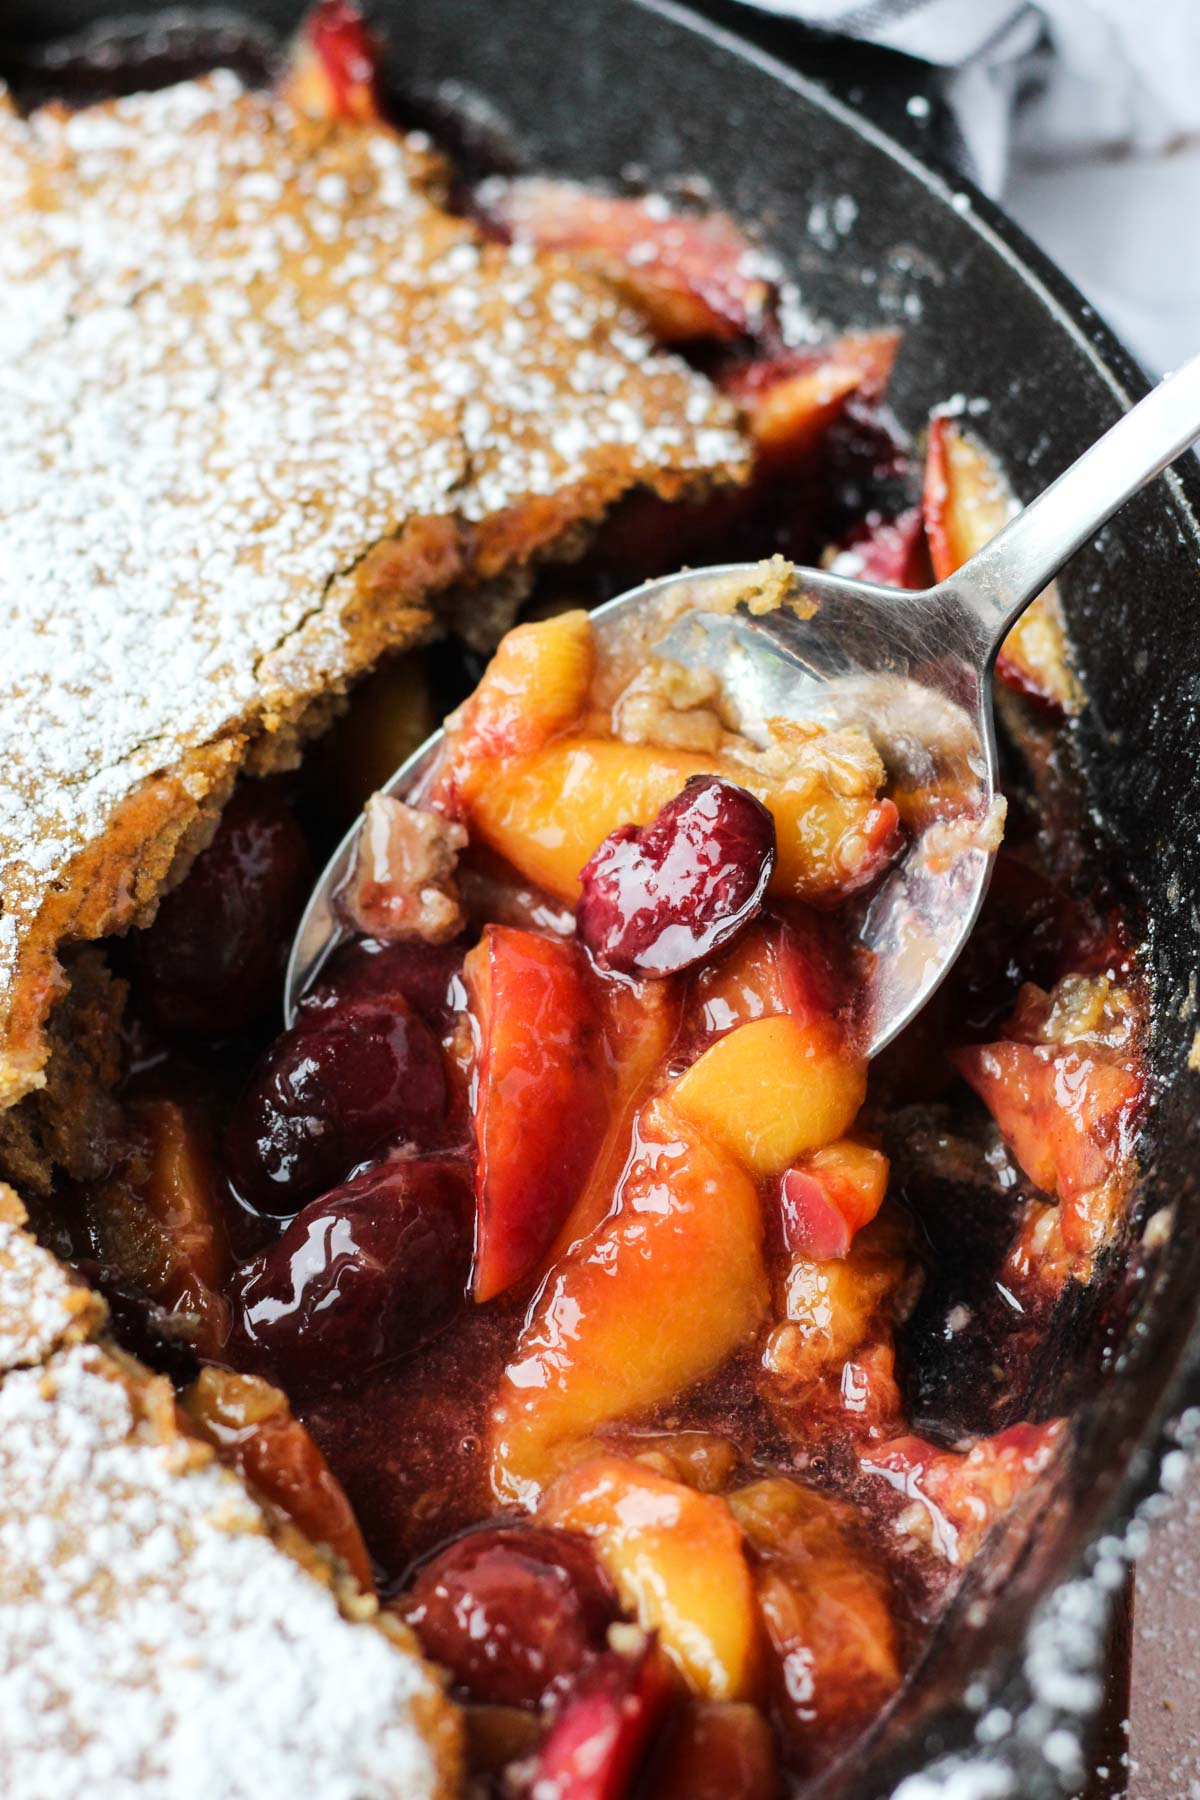 Spoon scooping out cobbler fruit.